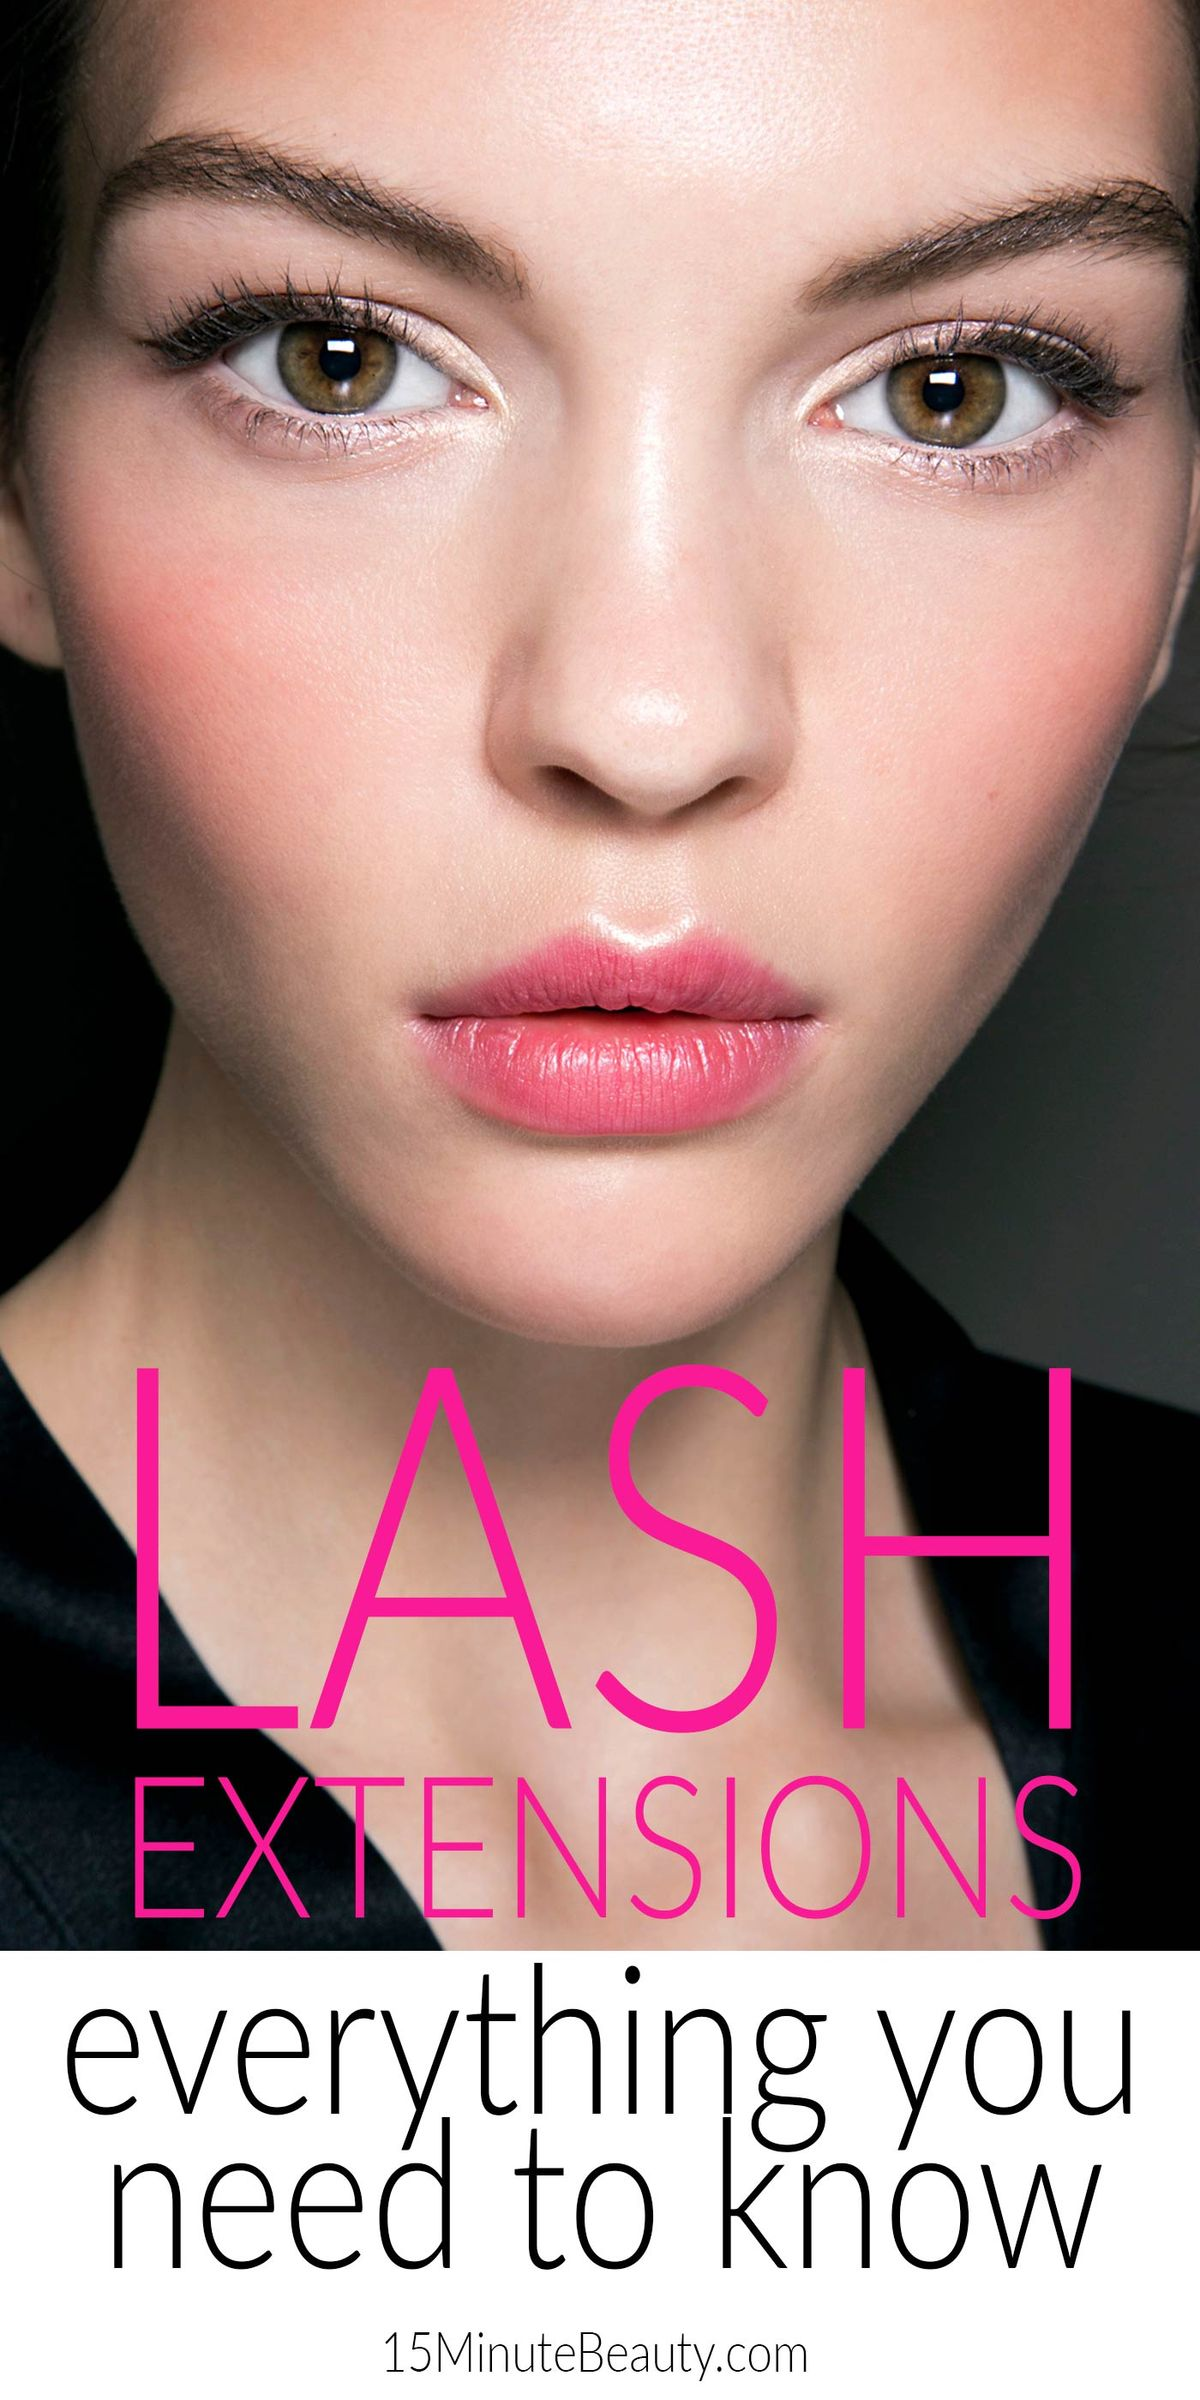 What you should know about Lash Extensions before you get them! All of the basics that you should know beforehand.